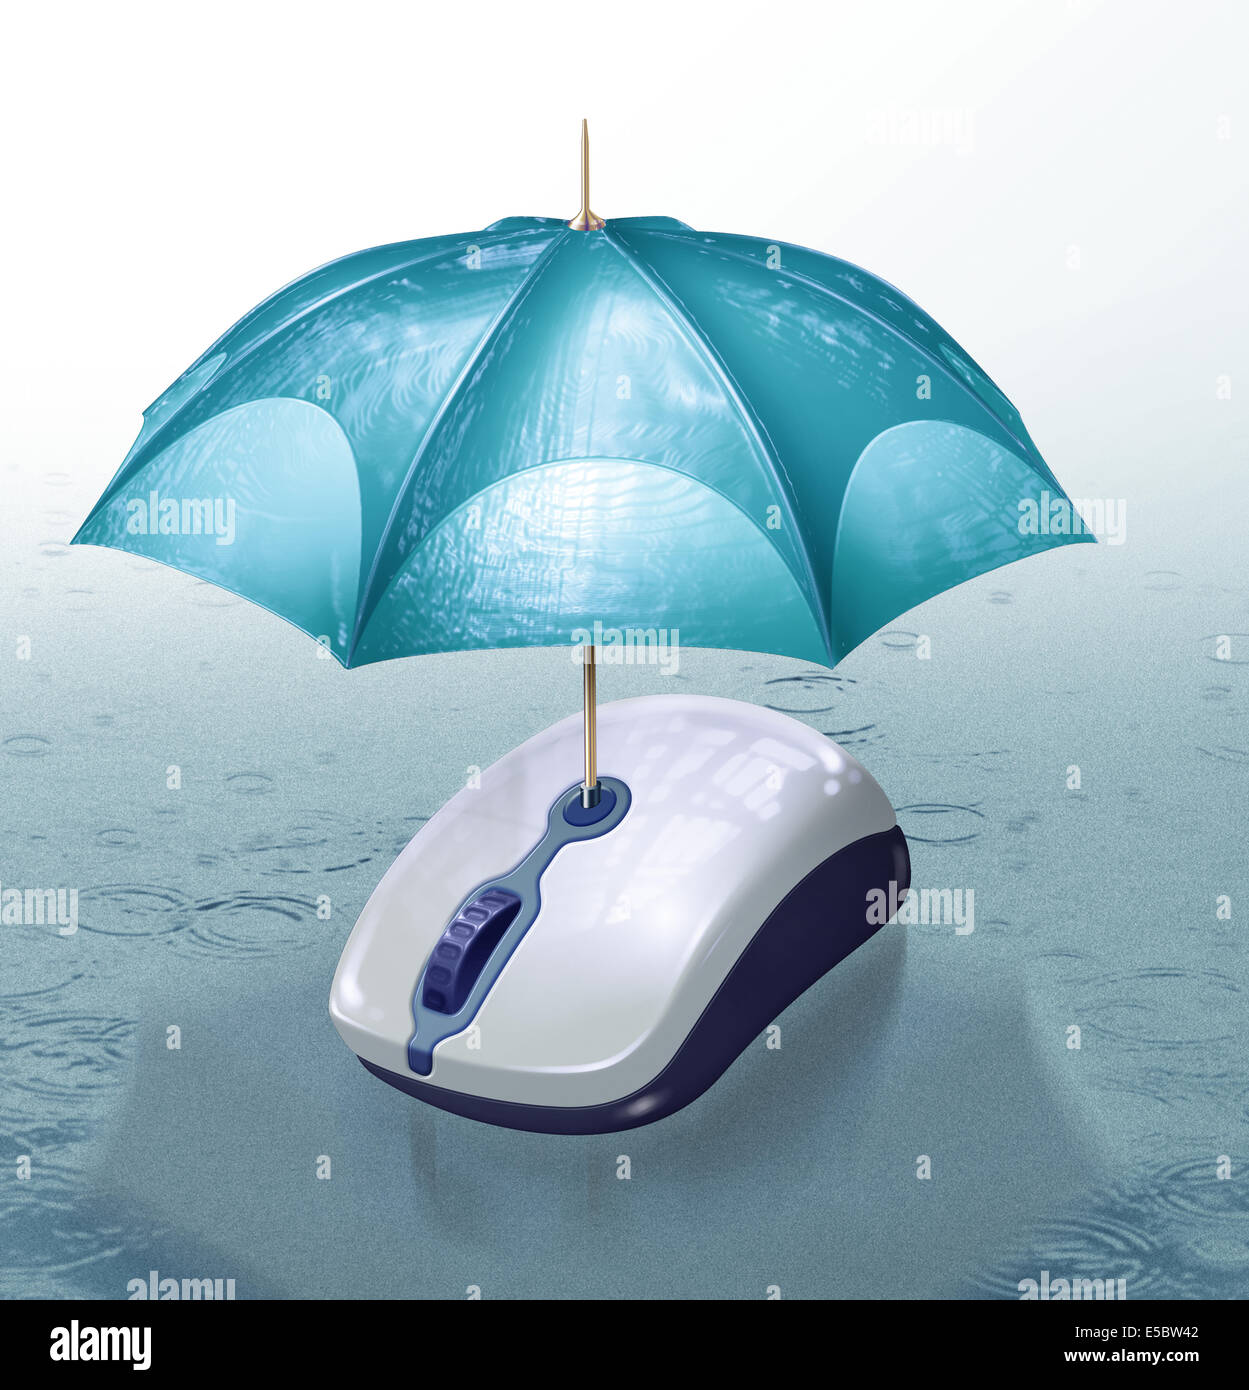 Illustrative image of umbrella covering computer mouse representing online insurance - Stock Image